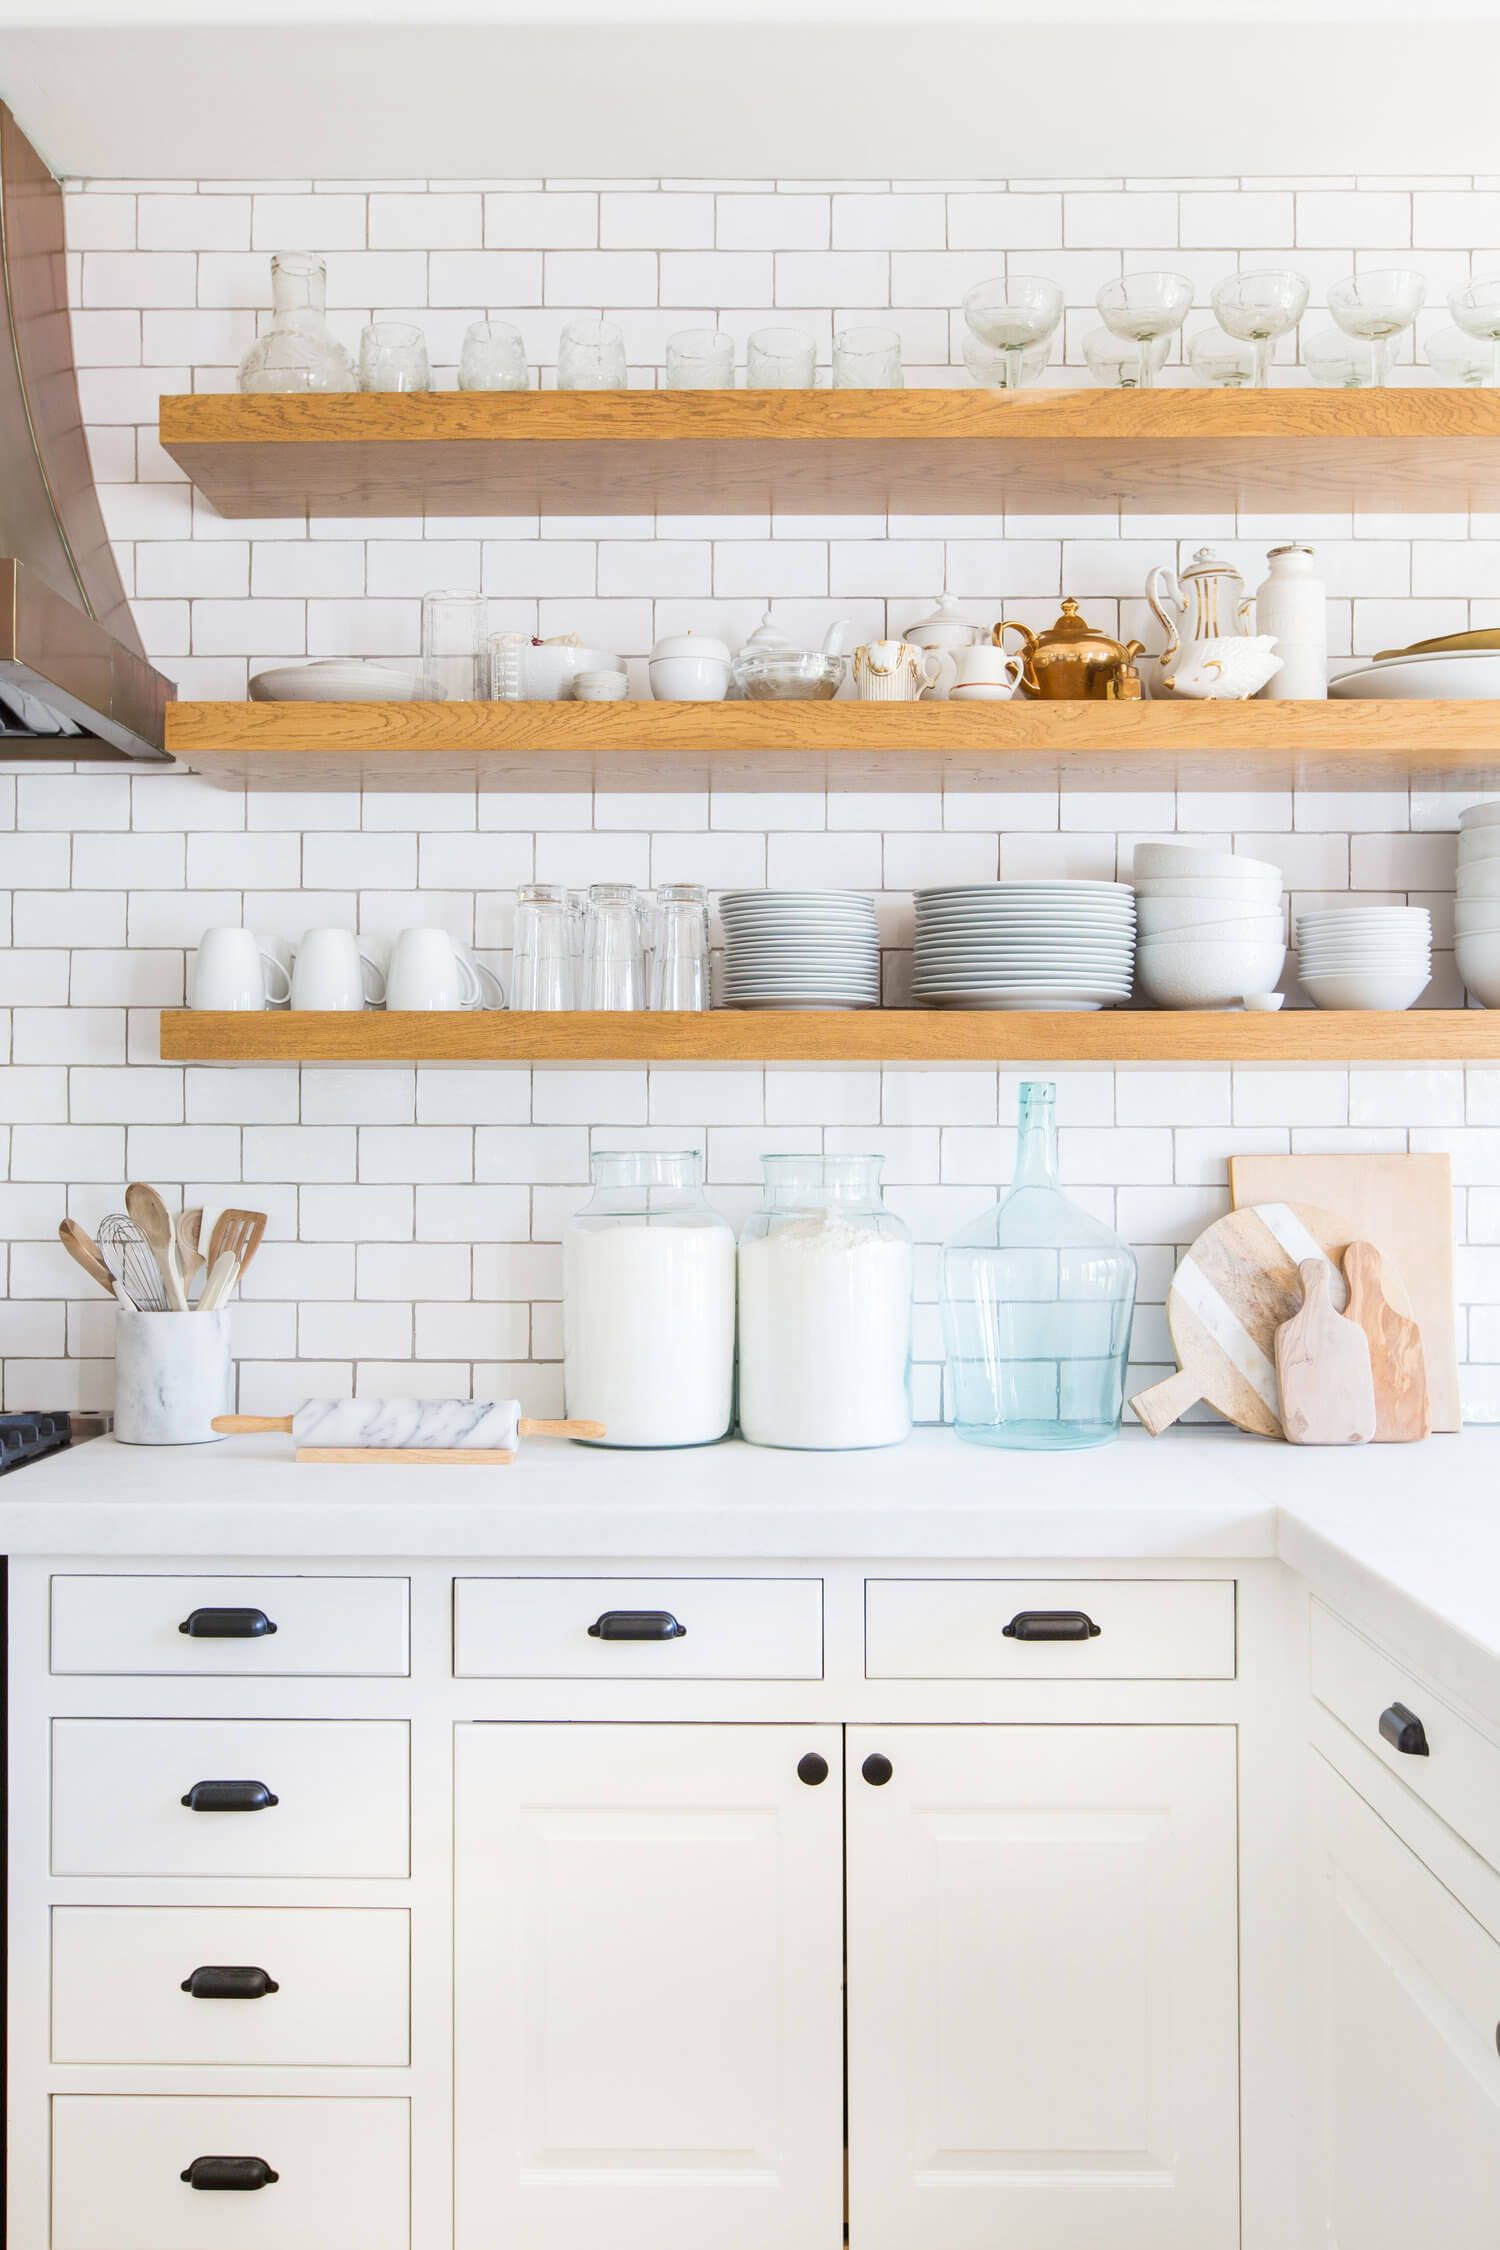 Kitchen With Shelves Instead Of Cabinets